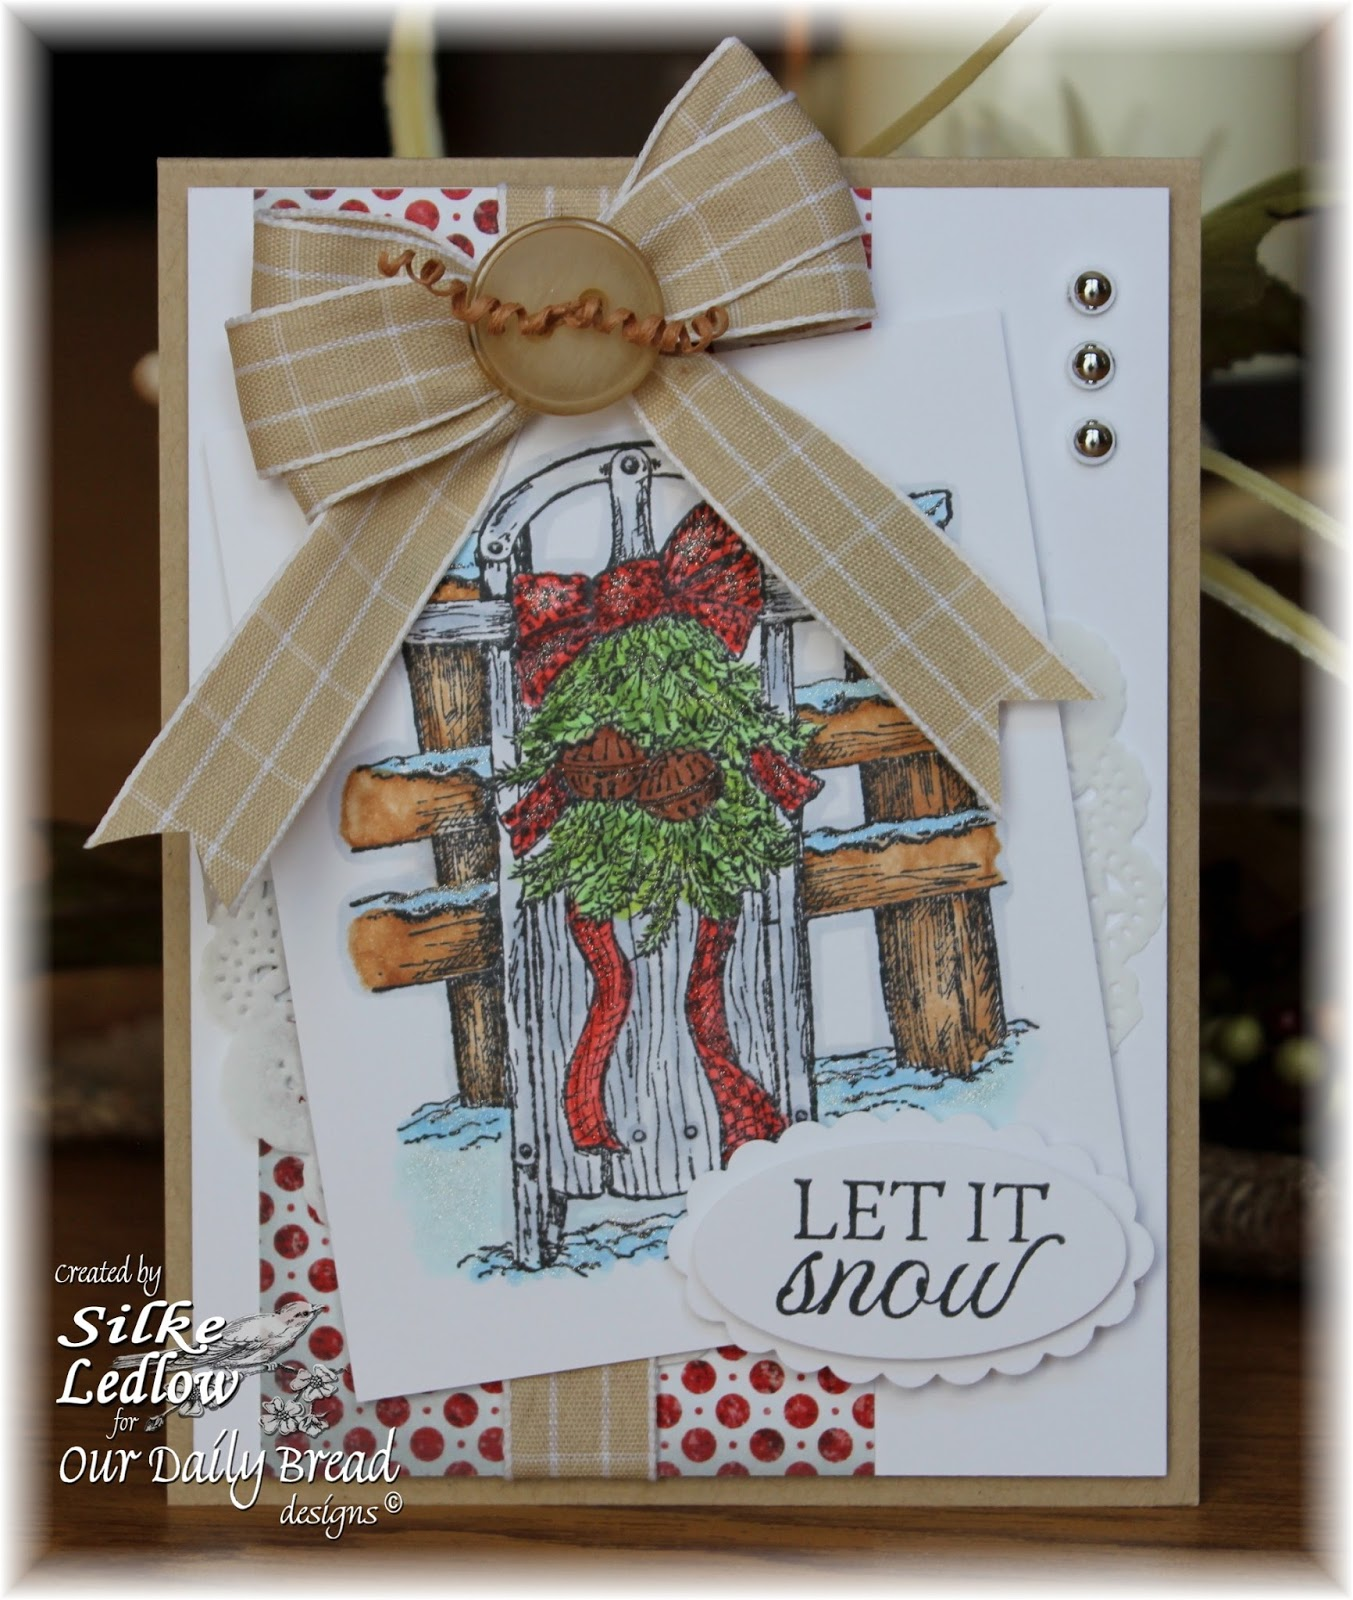 Stamps - Our Daily Bread Designs Let It Snow, ODBD Patriotic Paper Collection